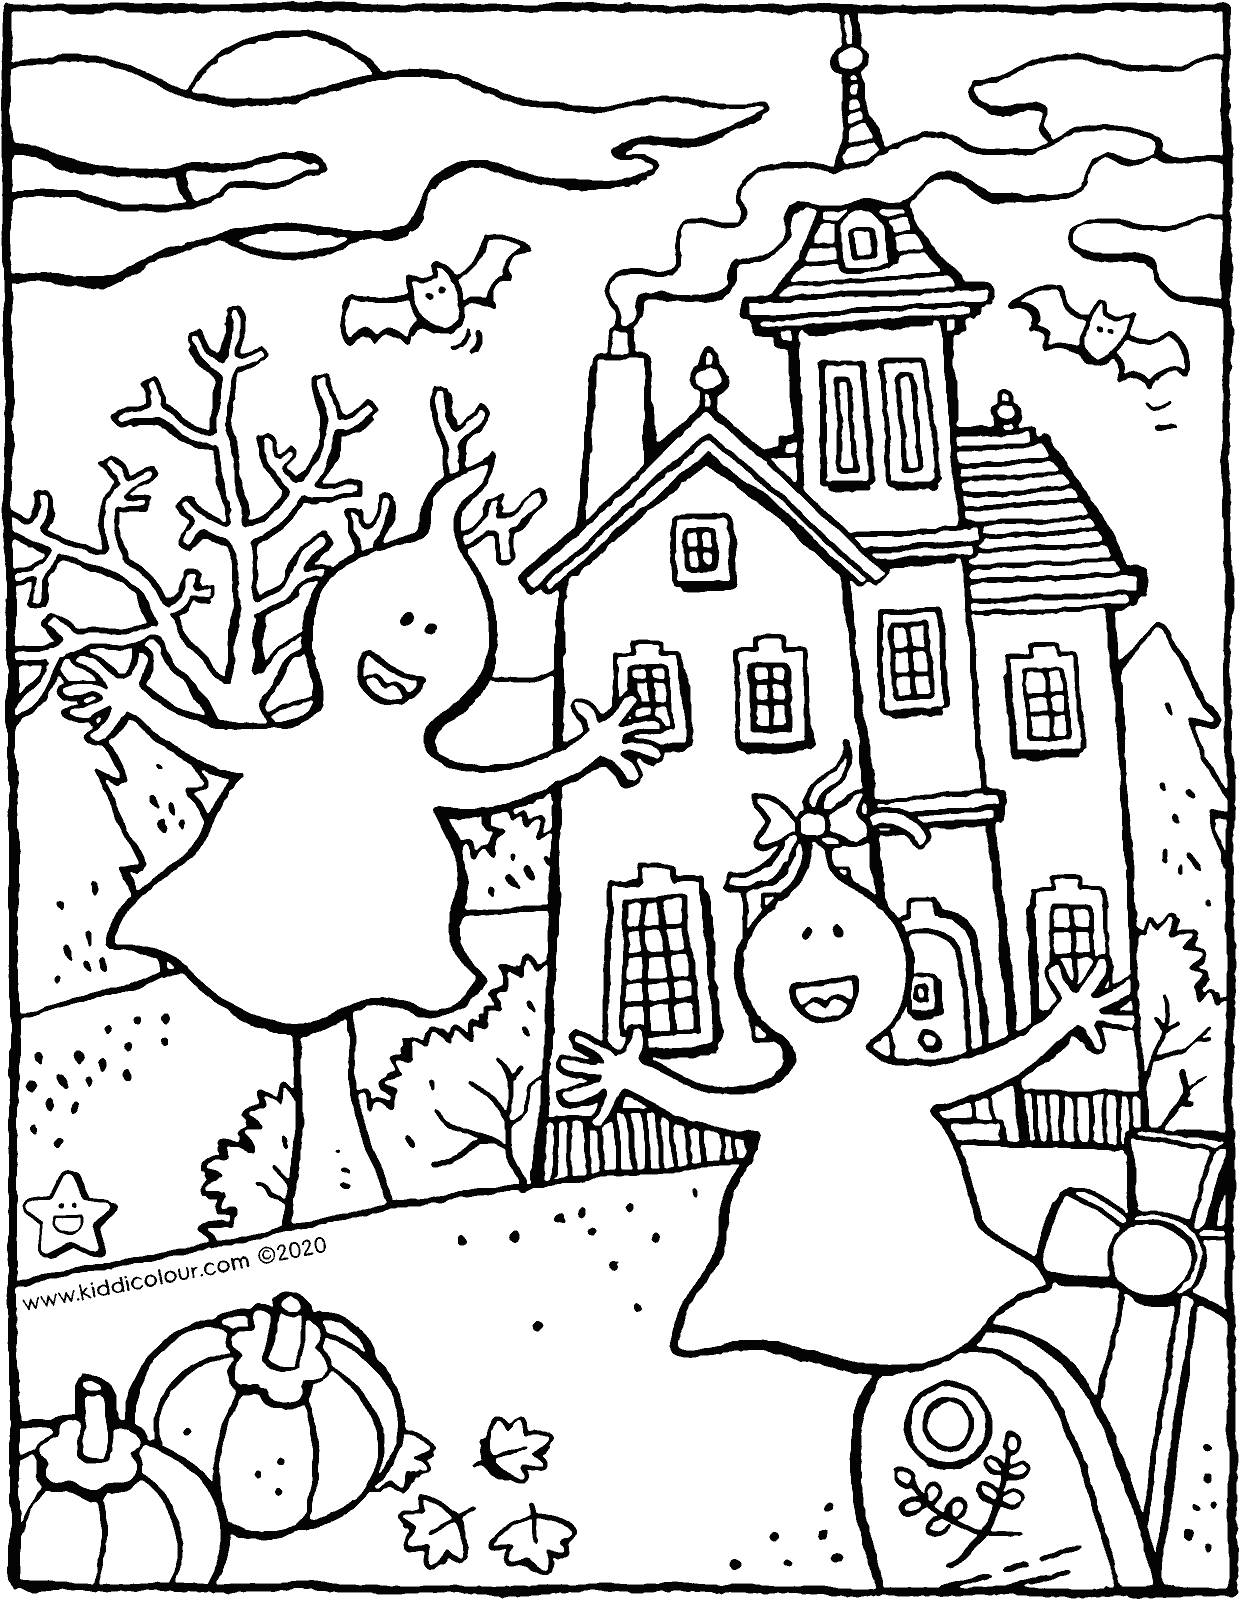 2 ghosts dance in the night colouring page drawing picture 01v